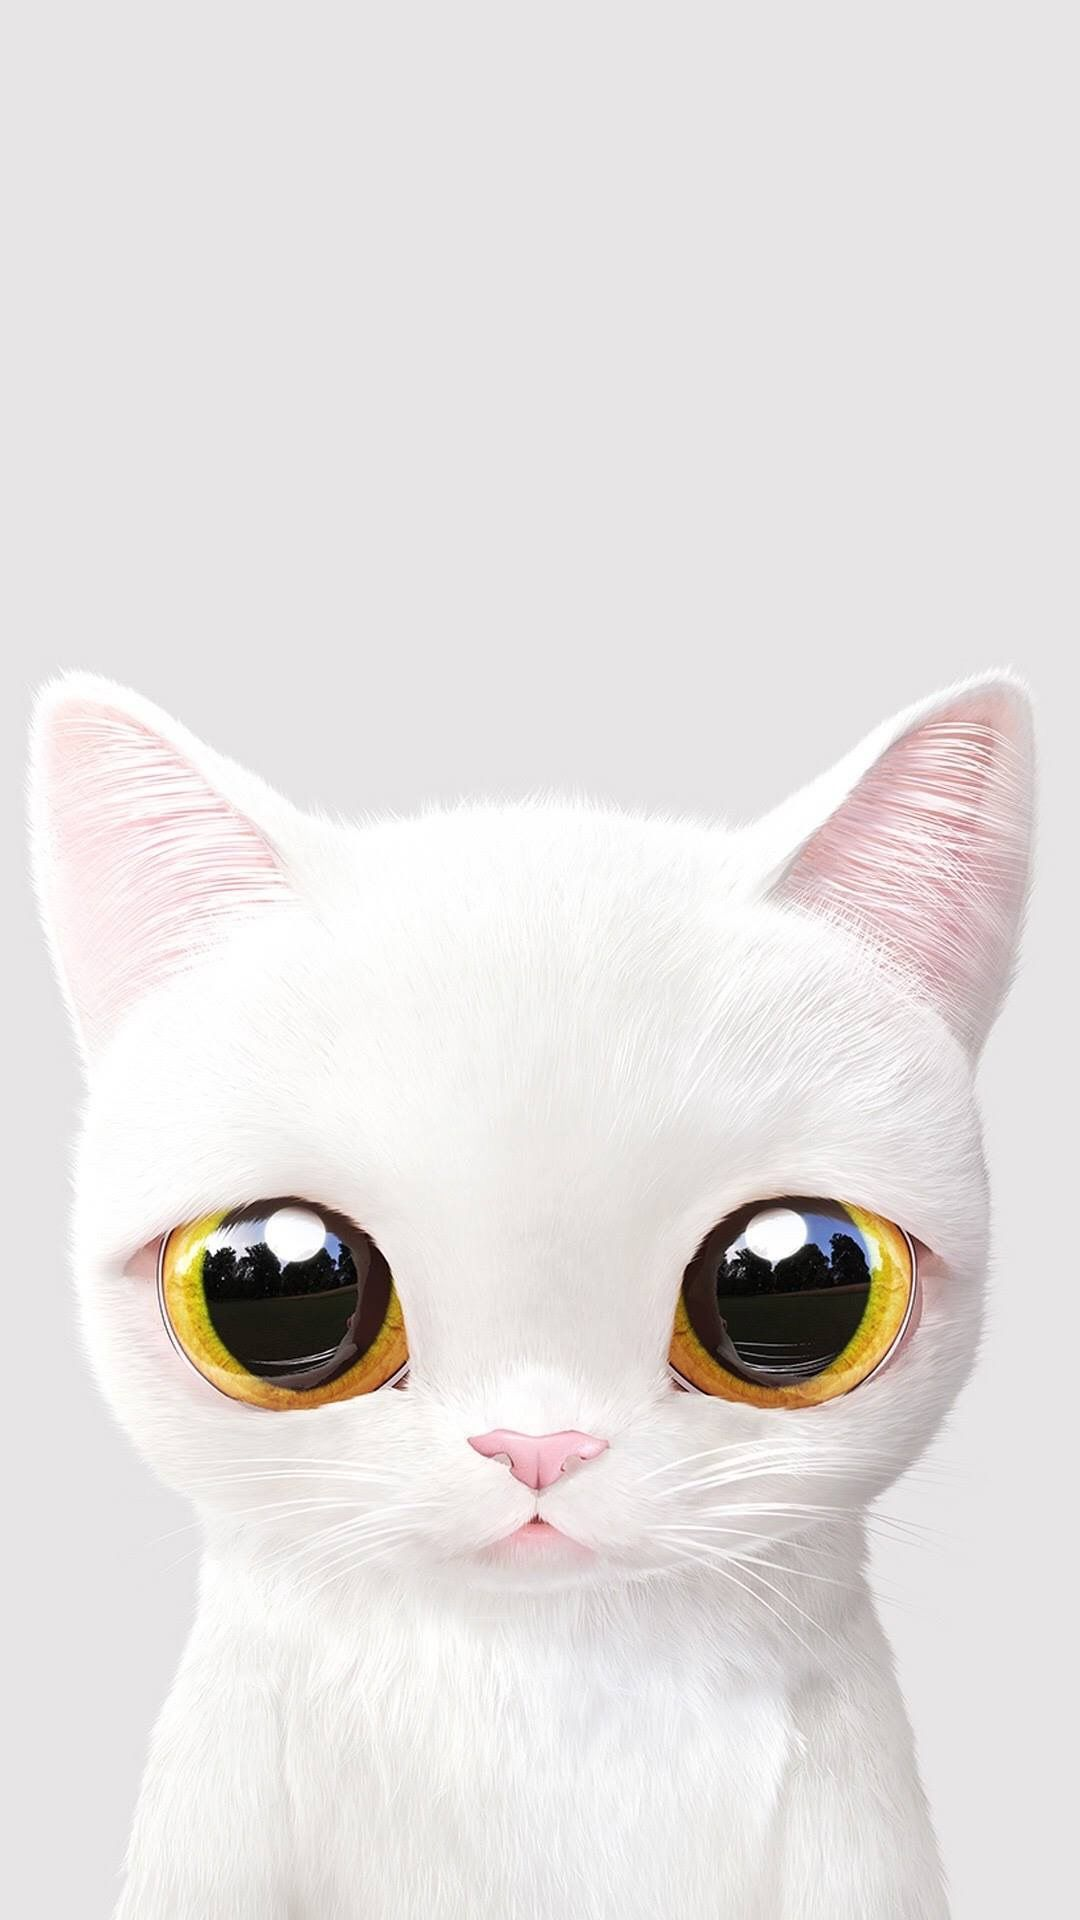 Pin by Nicole Andrea Gene Durante on CAT PHONE WALLPAPERS